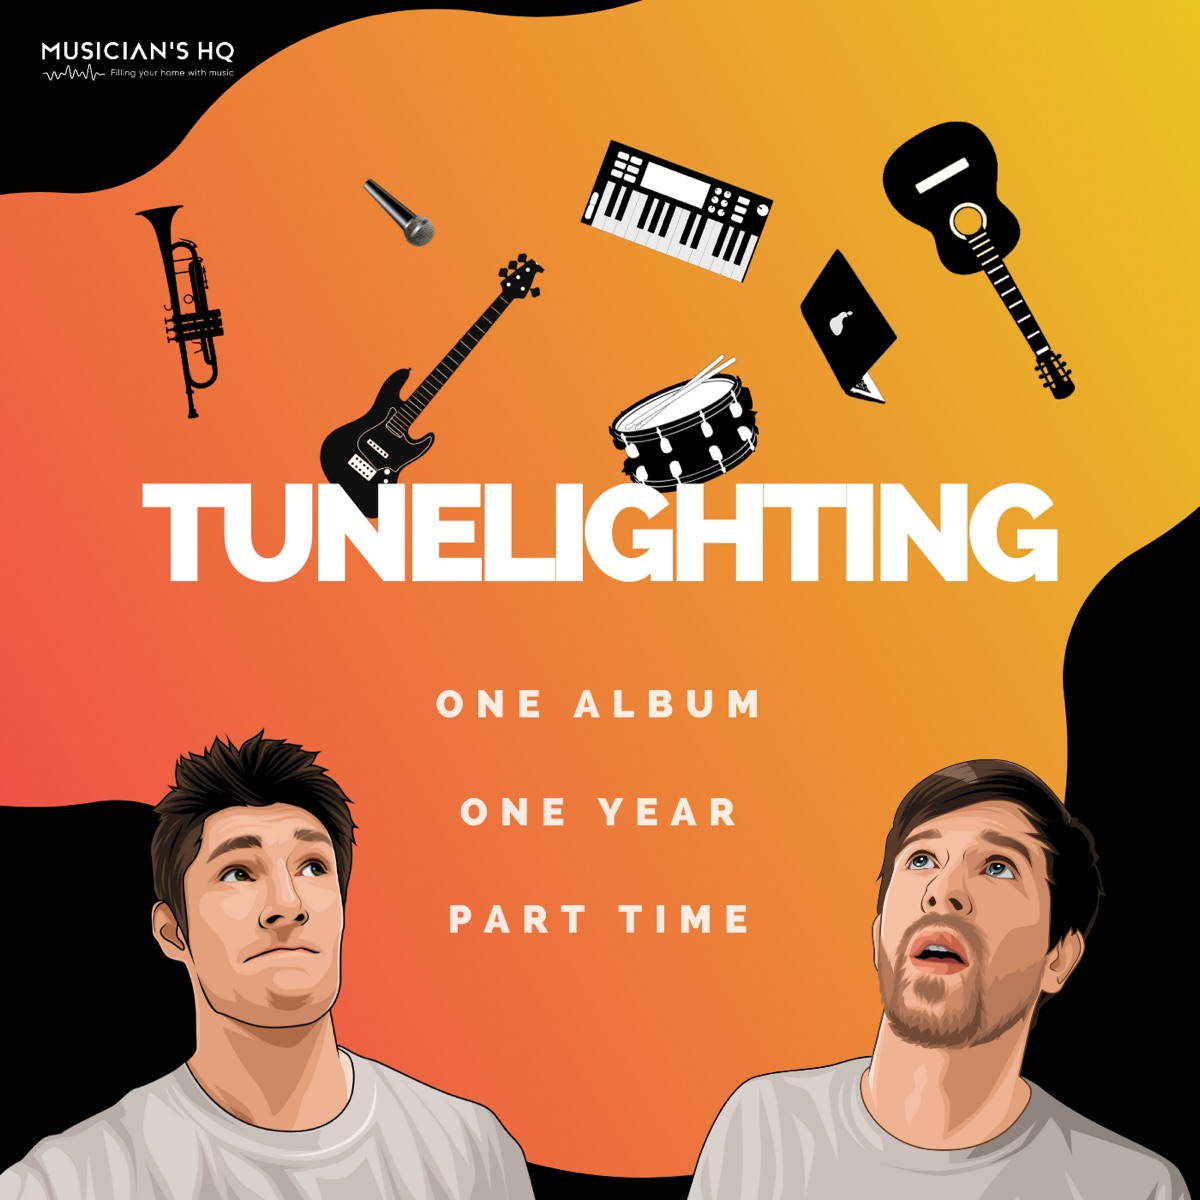 Tunelighting - How to Produce an Album in One Year